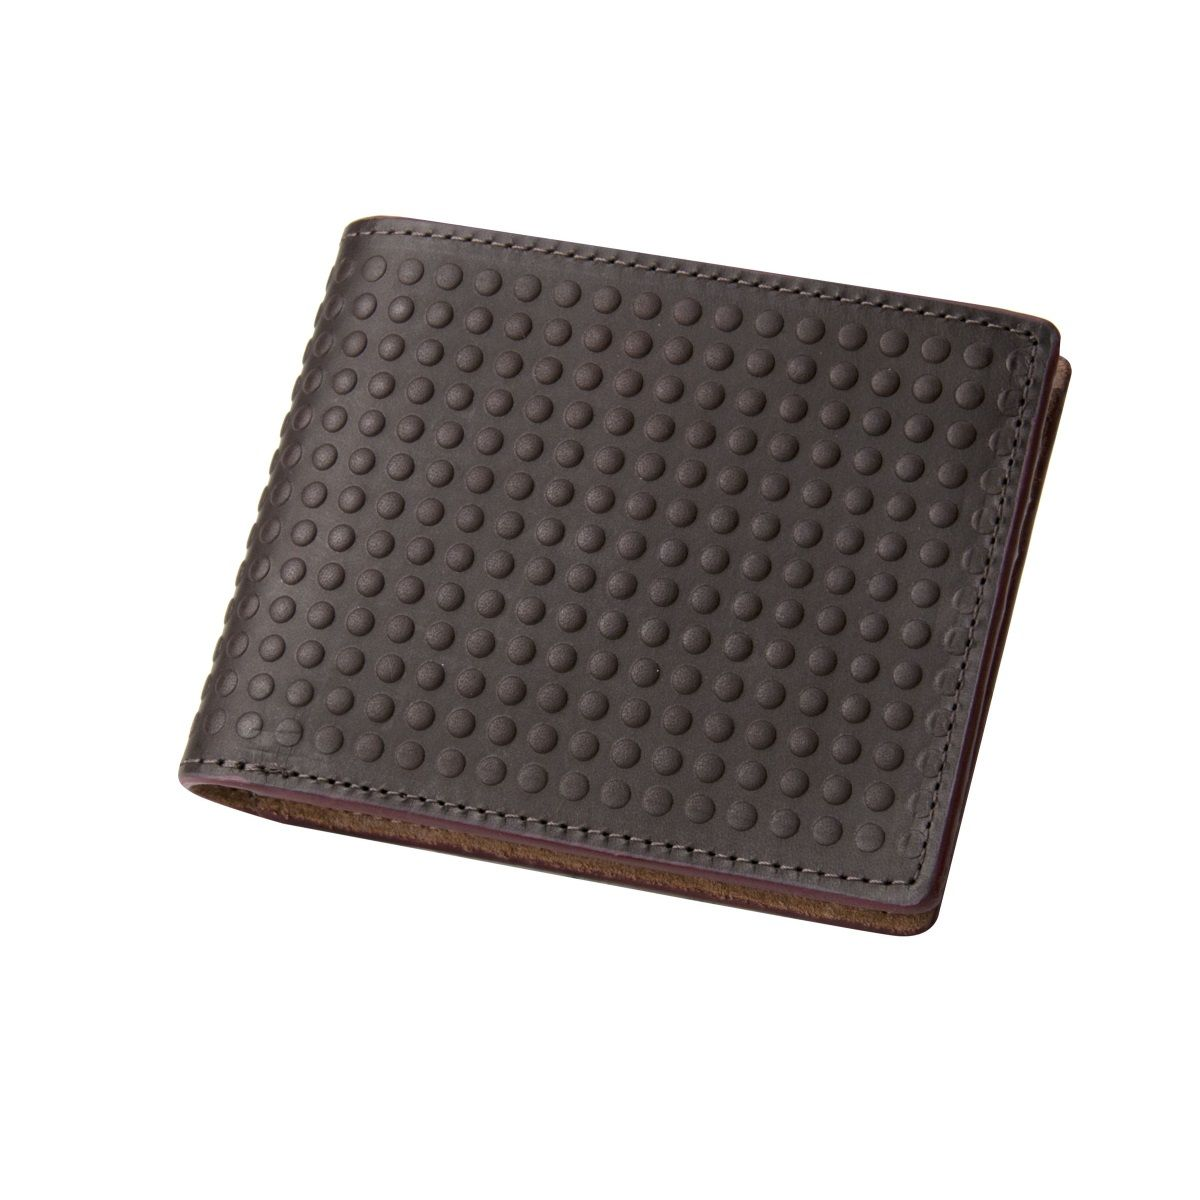 J.FOLD Altrus Leather Wallet - Brown